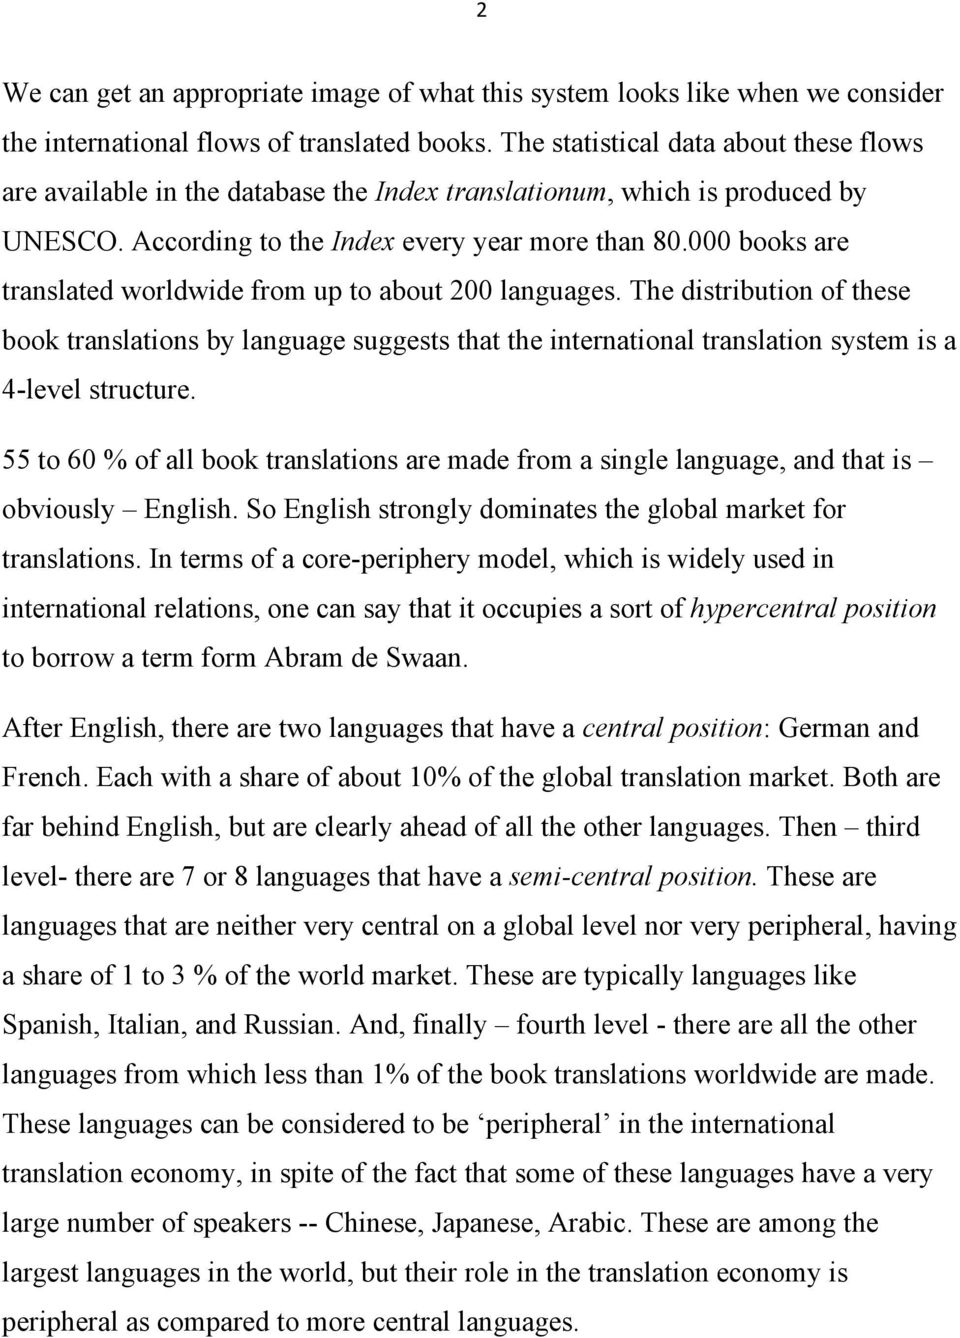 000 books are translated worldwide from up to about 200 languages. The distribution of these book translations by language suggests that the international translation system is a 4-level structure.